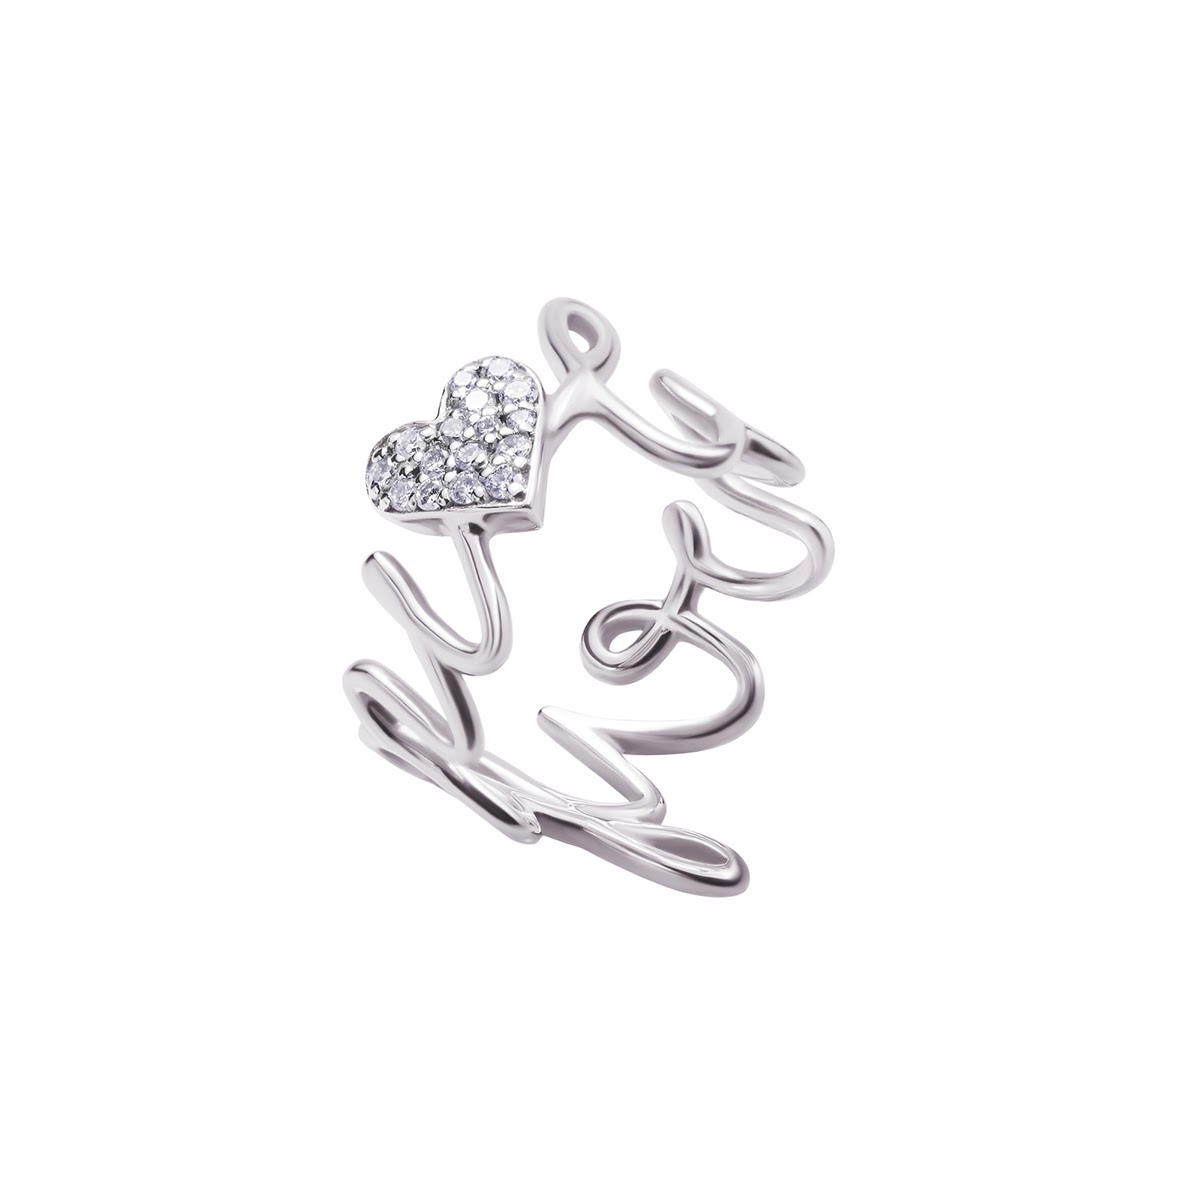 Love You White Gold Diamond Ring by Jewelry Lab on curated-crowd.com